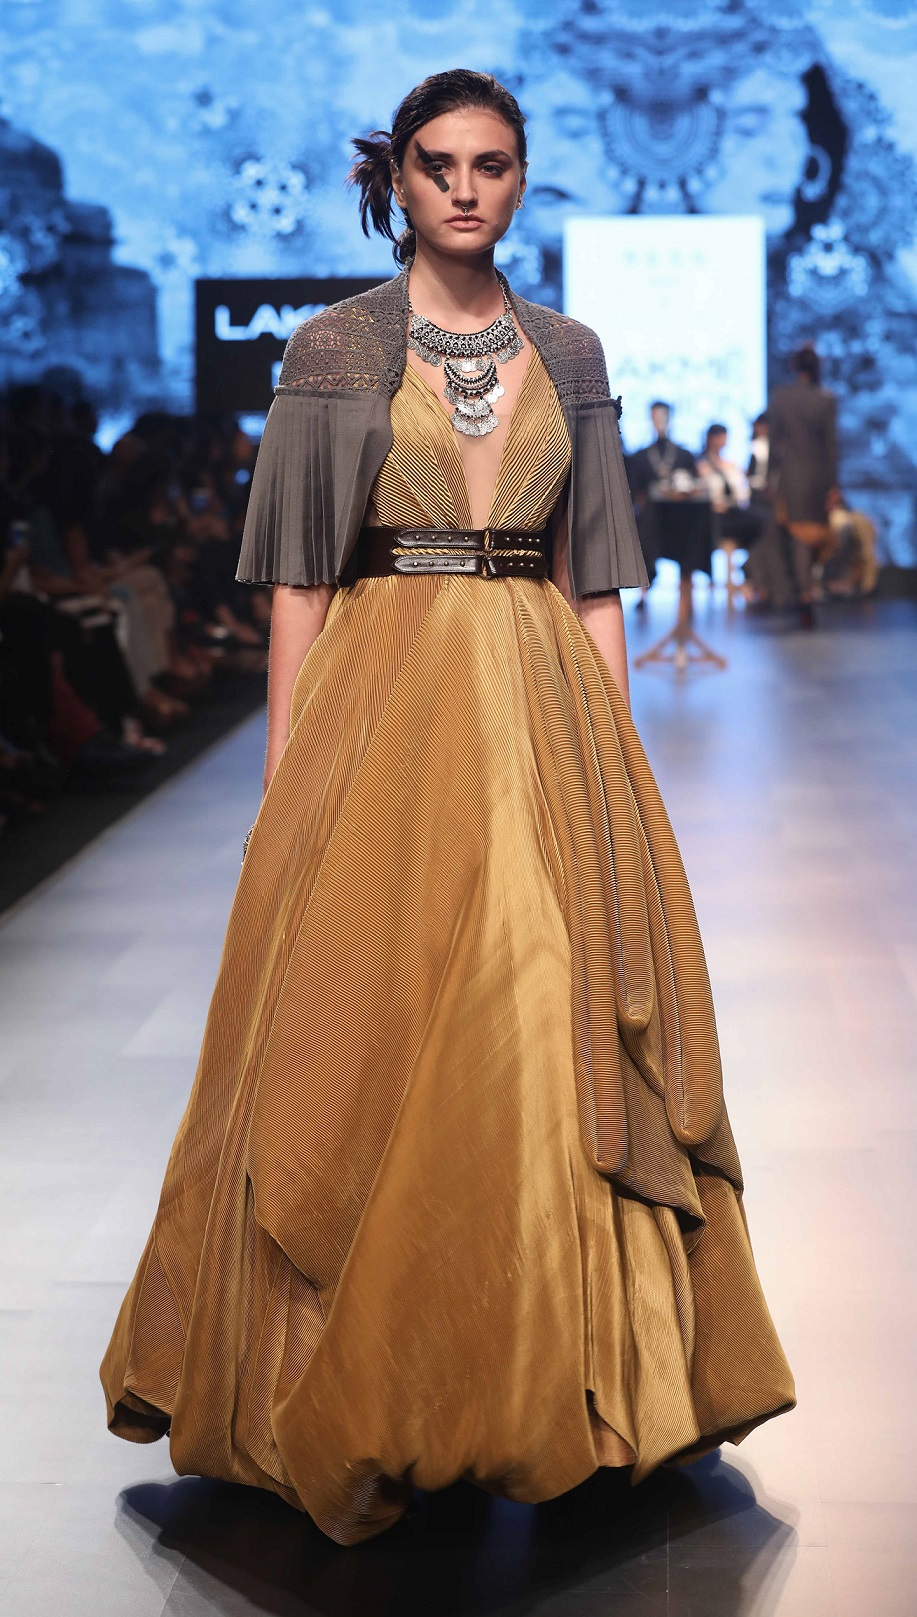 Lakmé Fashion Week Winter Festive 2018: NEXA PRESENTED THE FASHIONABLE COLLECTION FOR MILLENNIALS